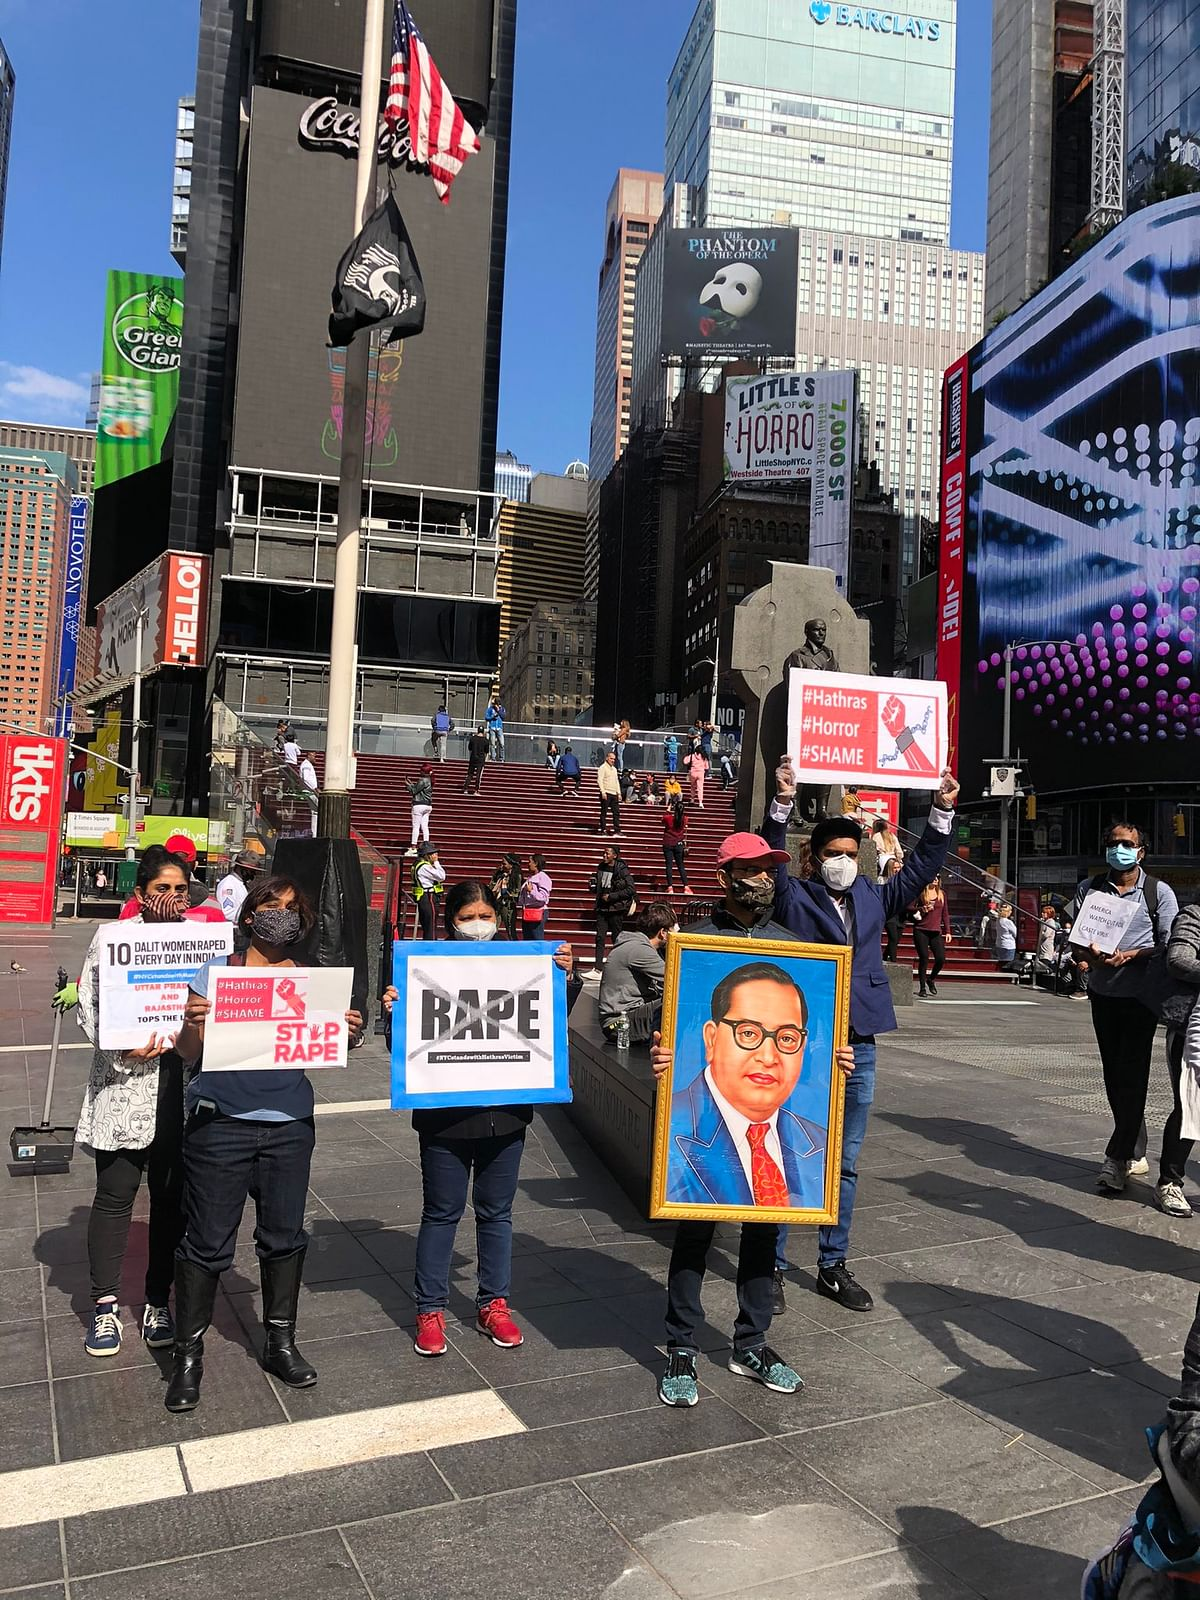 Dalit Lives Matter protest in New York.